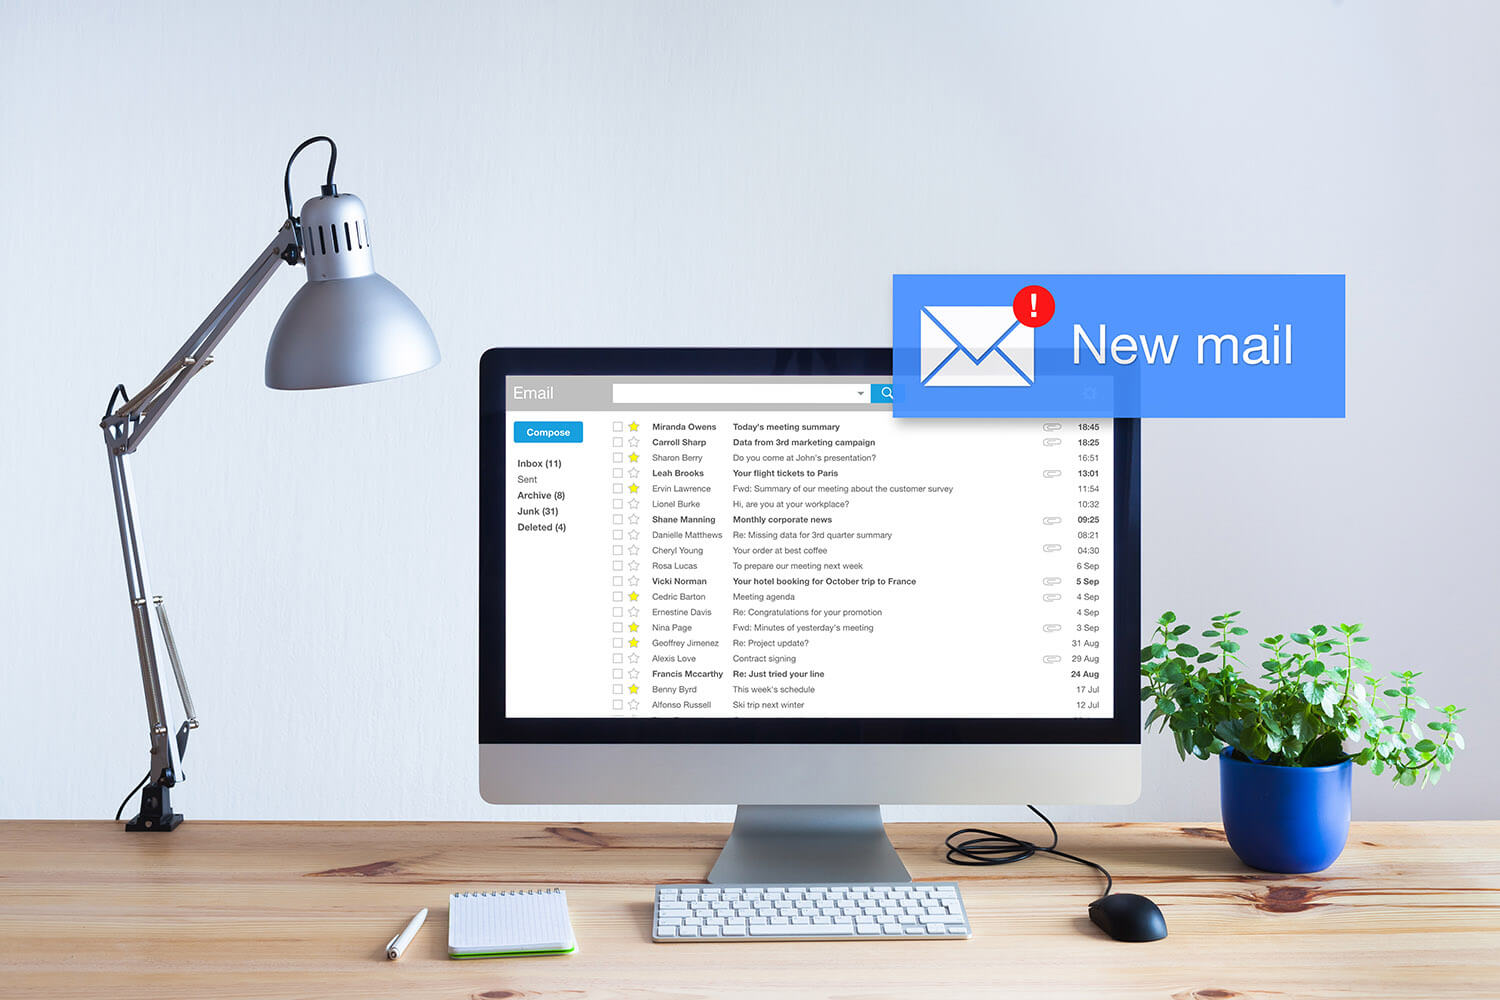 Tips to organize emails in Gmail